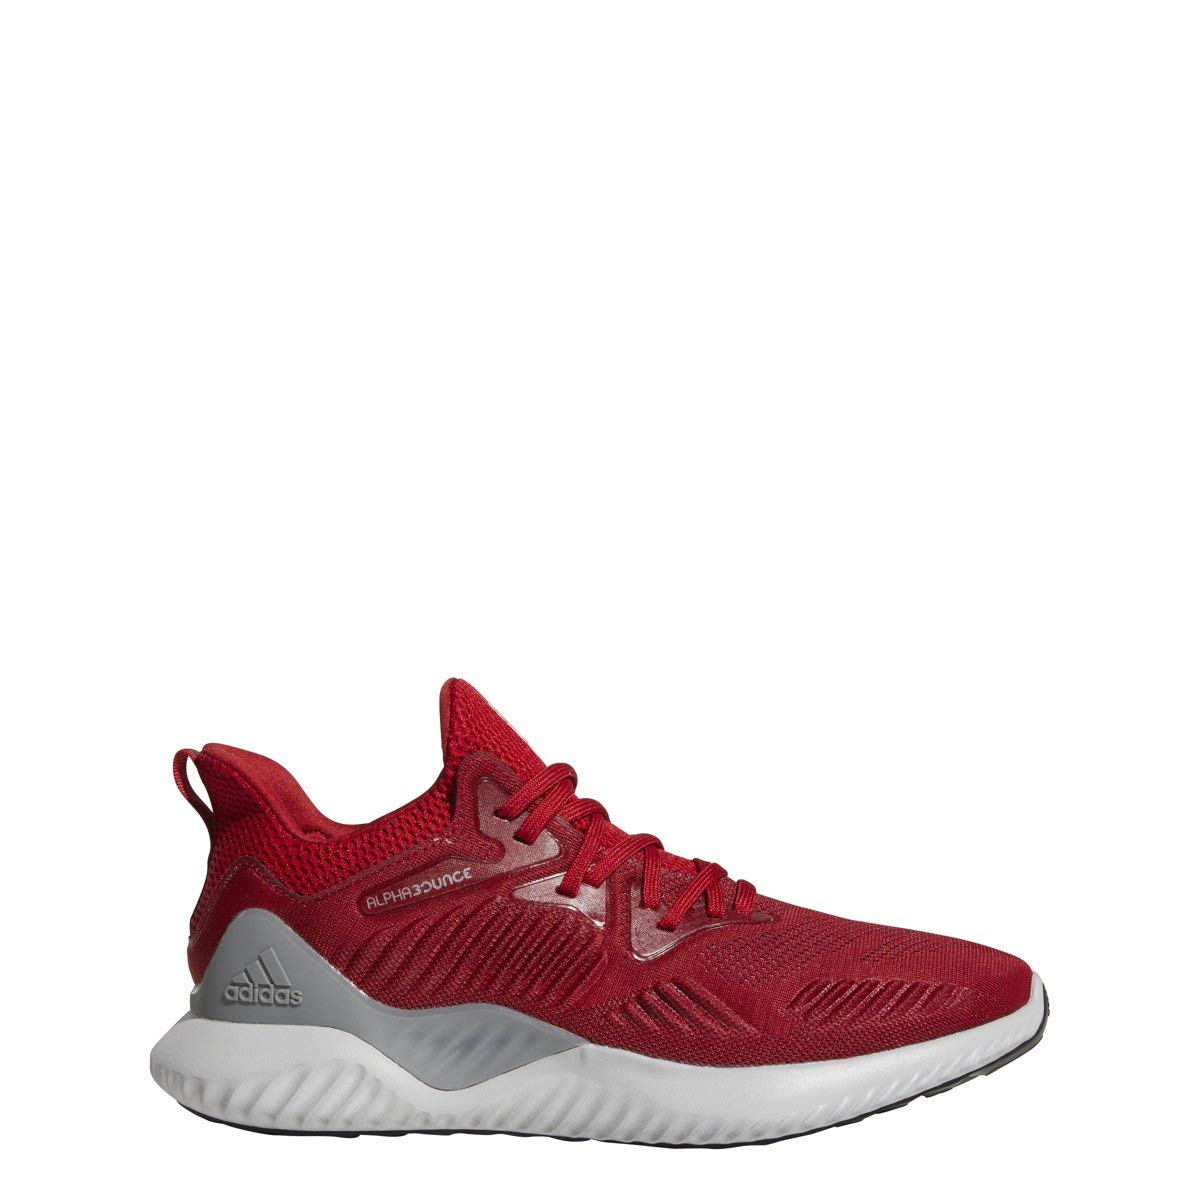 Power Red White Black 6 D(M) US Adidas Mens Alphabounce Beyond Team Running shoes